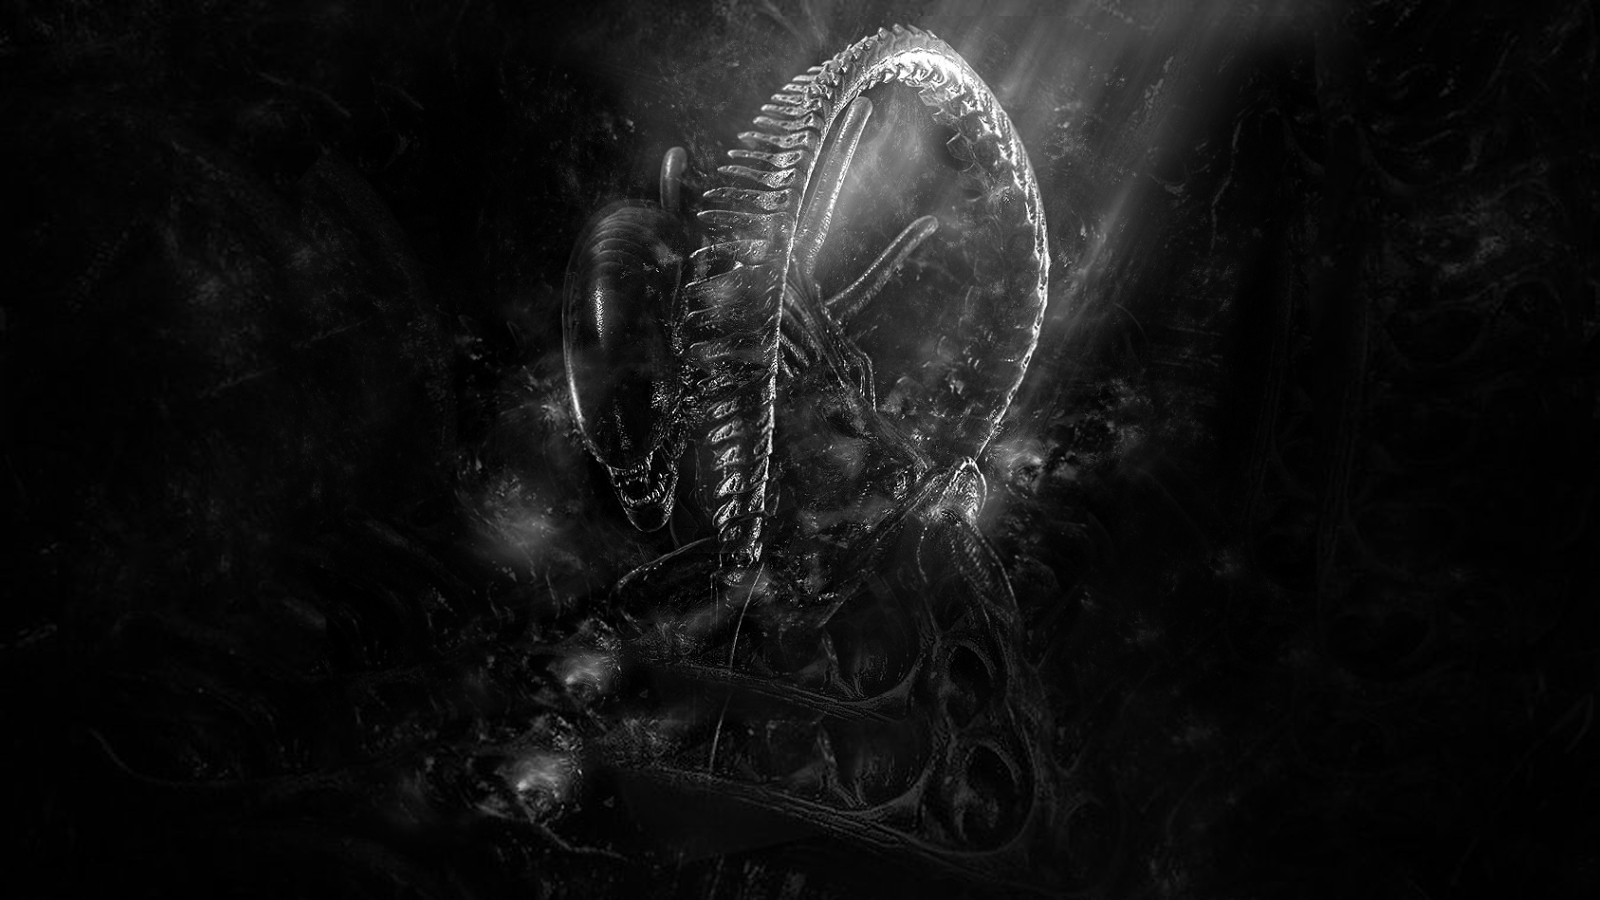 alien aliens images xenomorph wallpaper 1600x900 hd